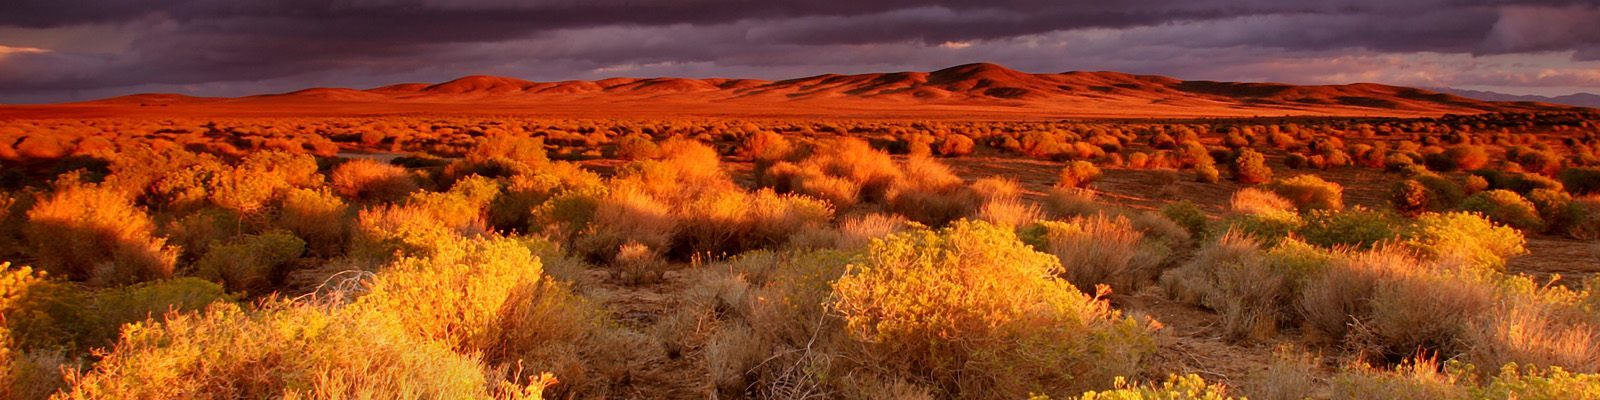 antelope valley bankruptcy in the desert